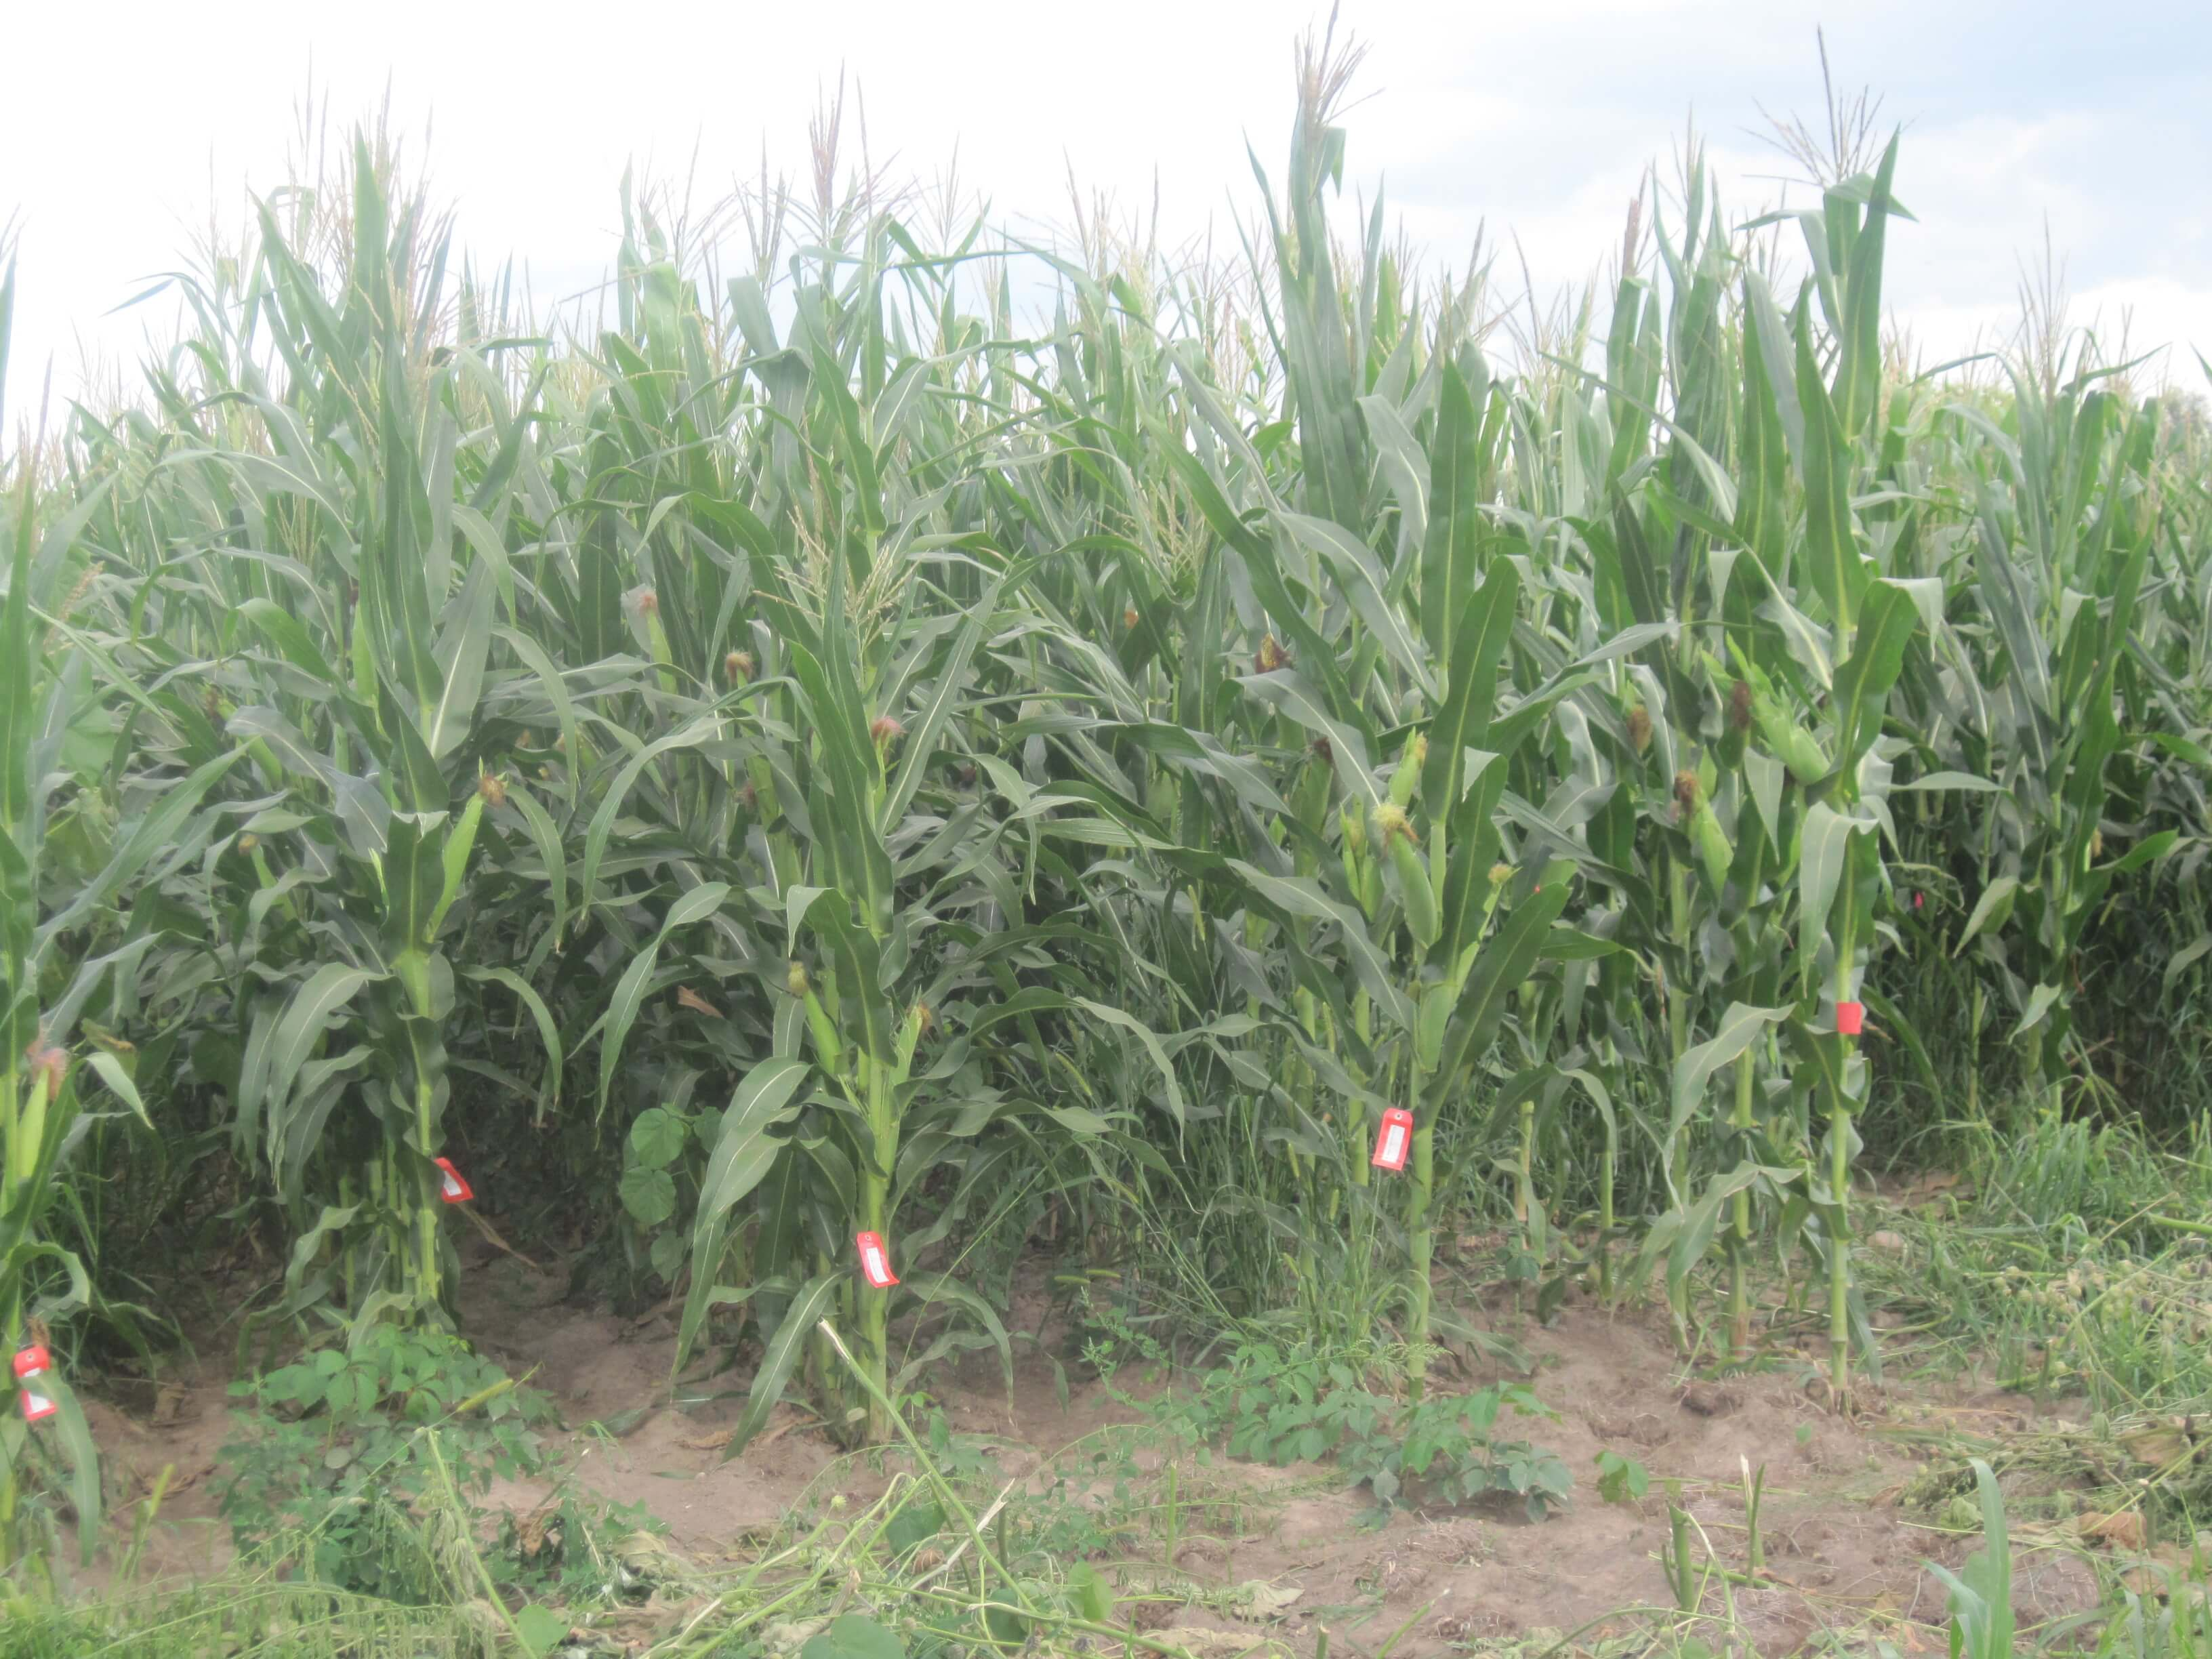 Robust Mandaamin Institute open pollinated variety